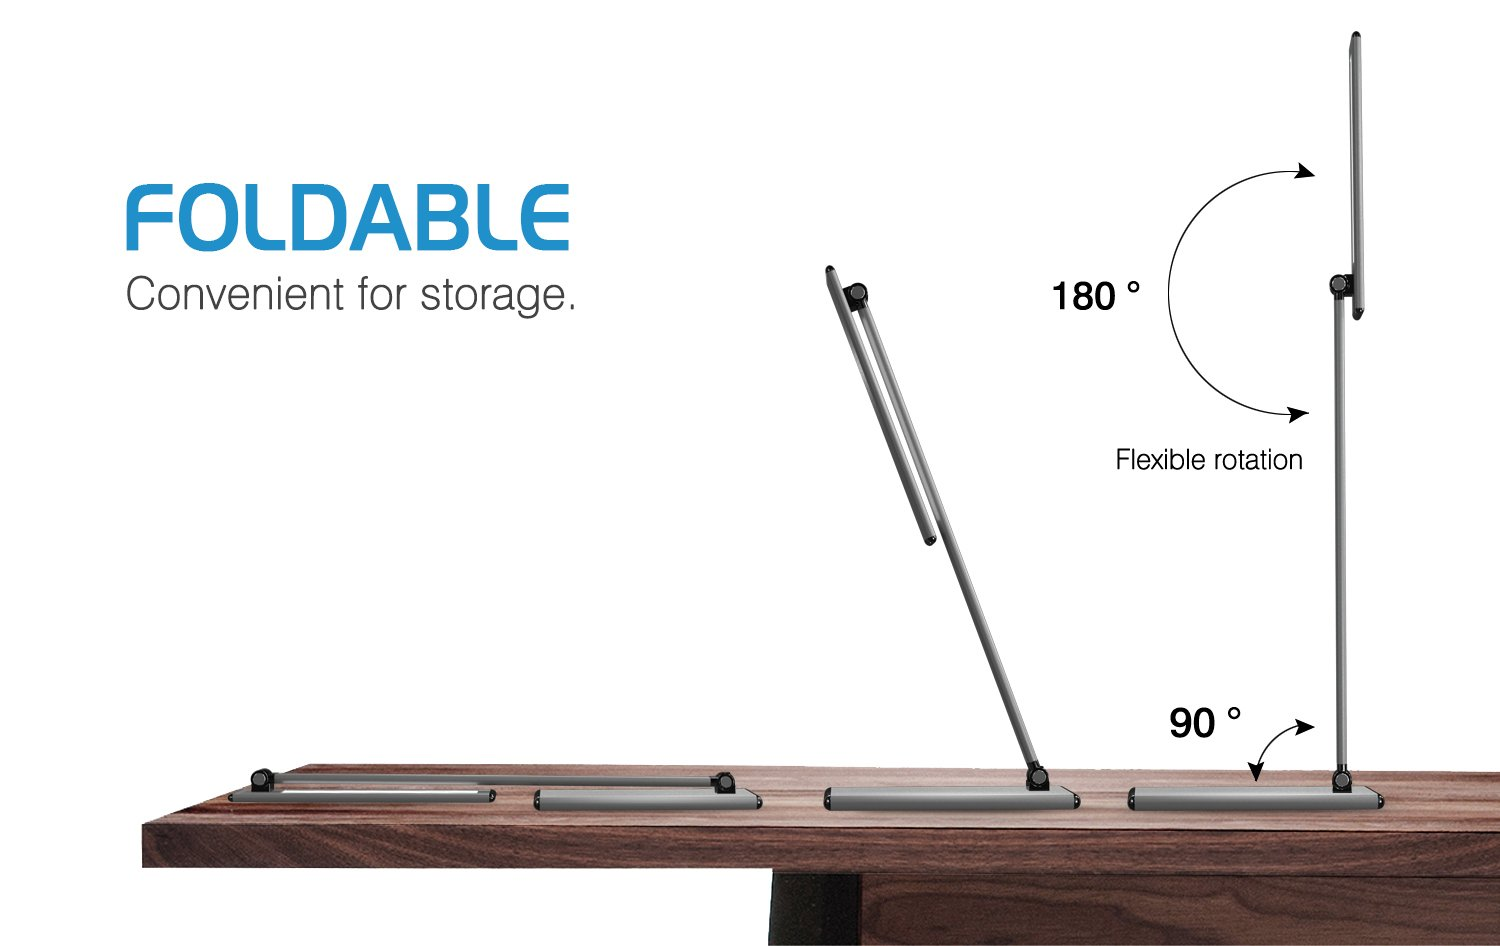 MoKo LED Desk Lamp, 8W Eye-Care Smart Touch Control Table Lamps with Rugged Aluminum Alloy Body, Stepless Adjusted Color Temperature/Brightness Level, Rotatable Arm/Head, Memory Function - Dark Gray by MoKo (Image #7)